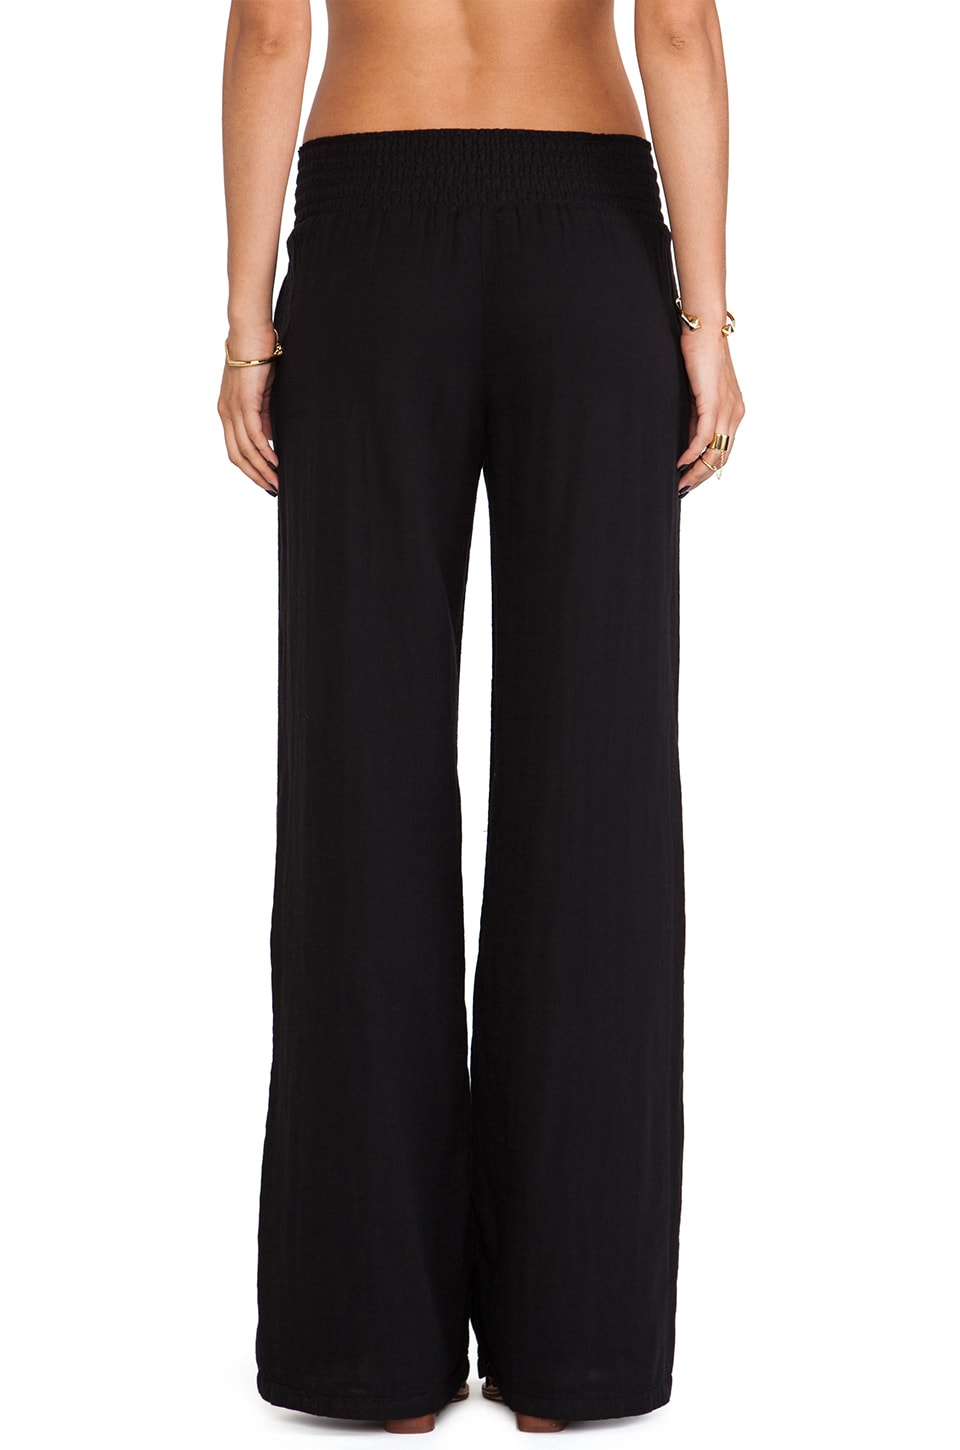 Splendid Woven Wide Leg Pants in Black | REVOLVE